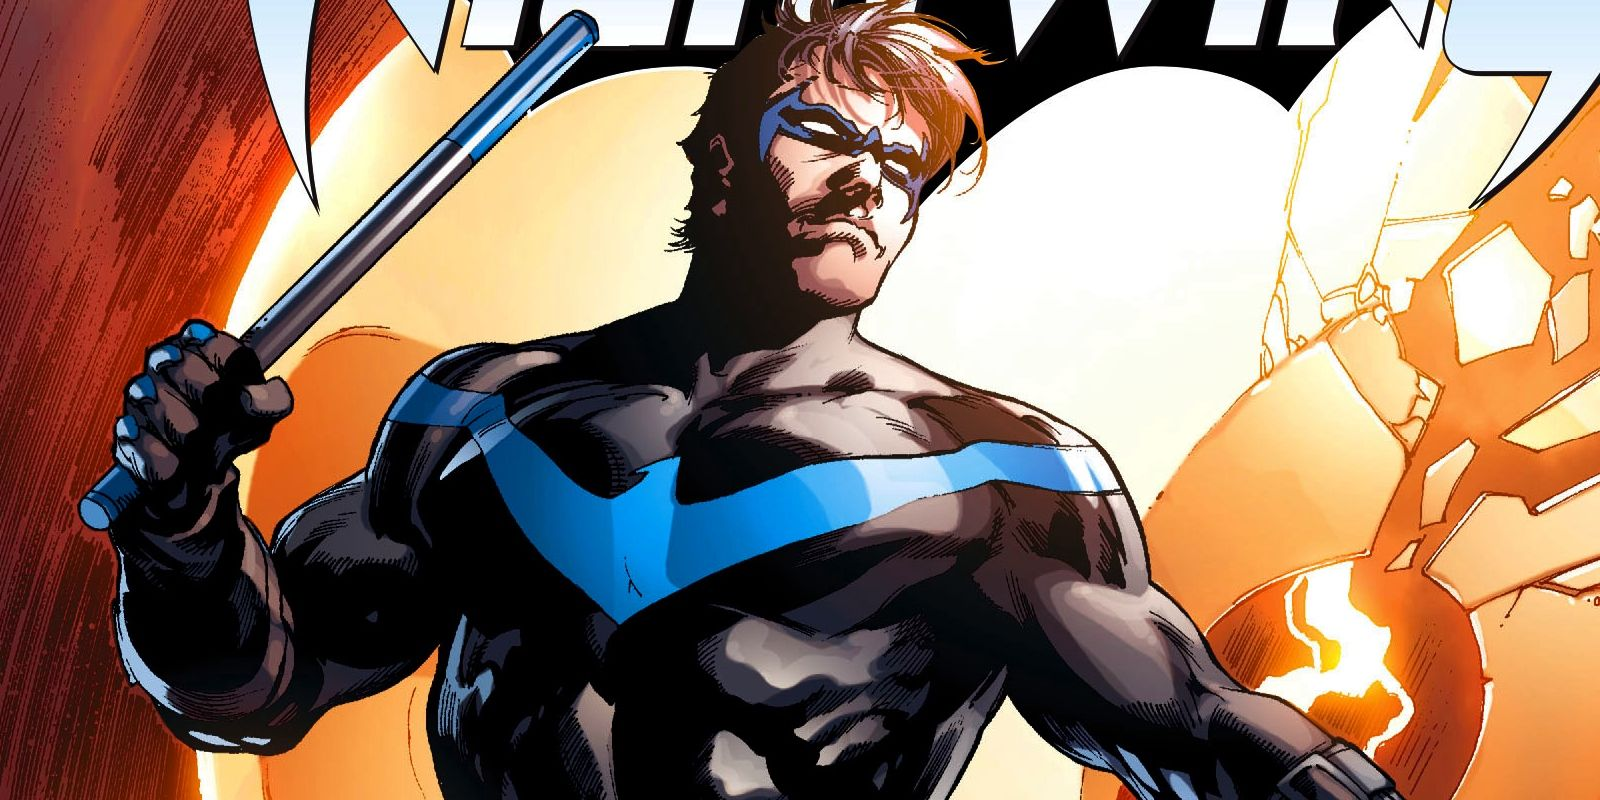 New Nightwing Comic Story Coming From Scott Snyder   Screen Rant